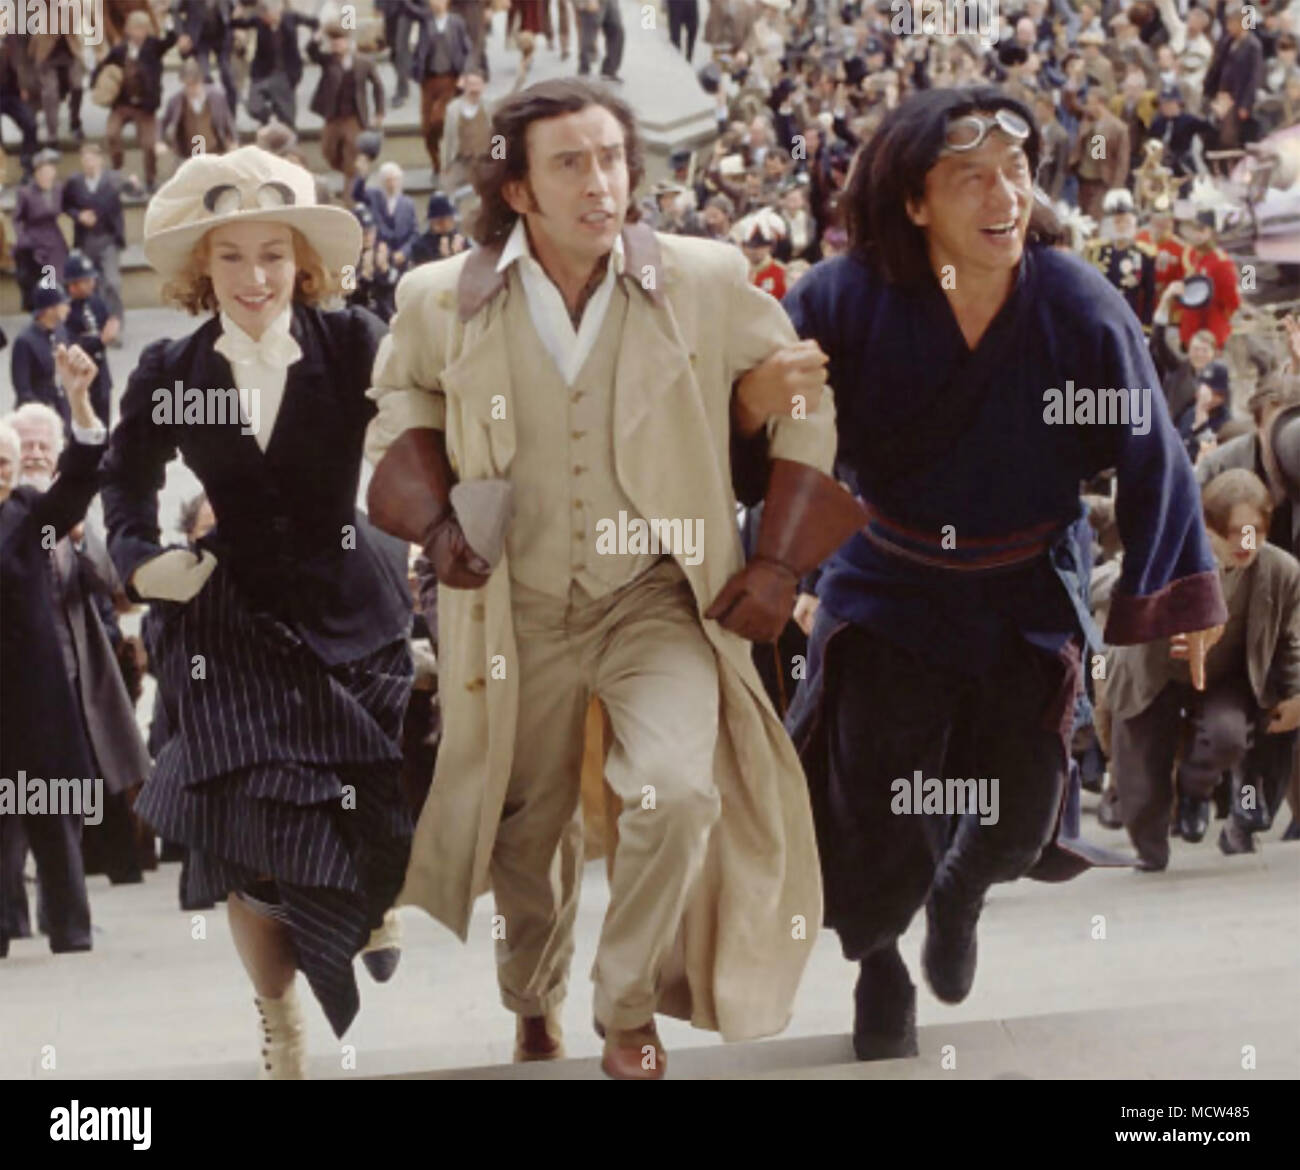 AROUND THE WORLD IN 80 DAYS 2004  Buena Vista film with from left: Cecile de France, Steve Coogan, Jackie Chan - Stock Image